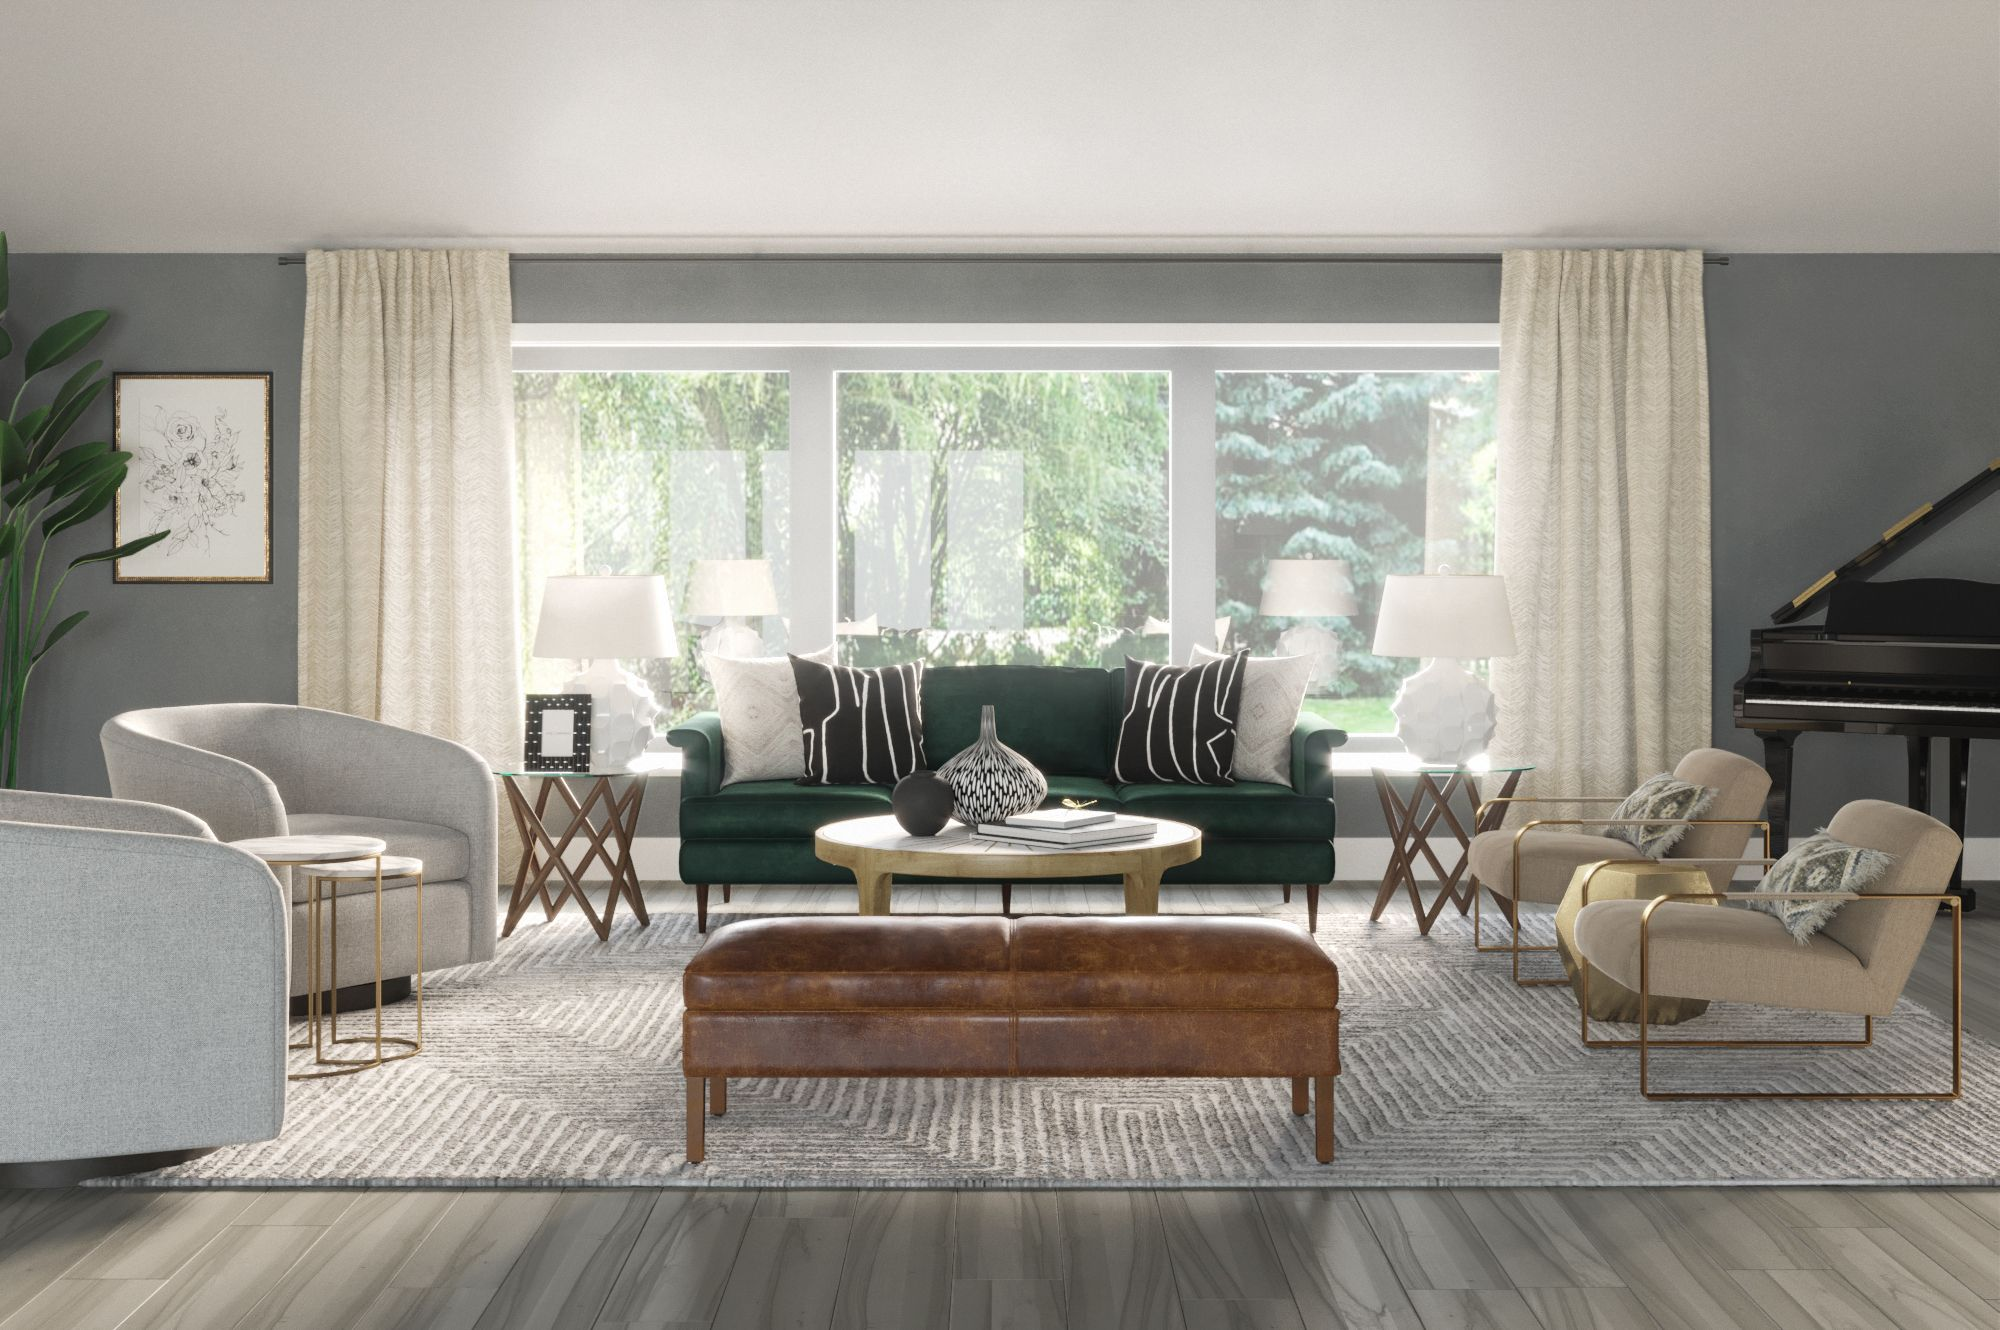 Online Interior Design and Home Decorating  Havenly  Glamorous